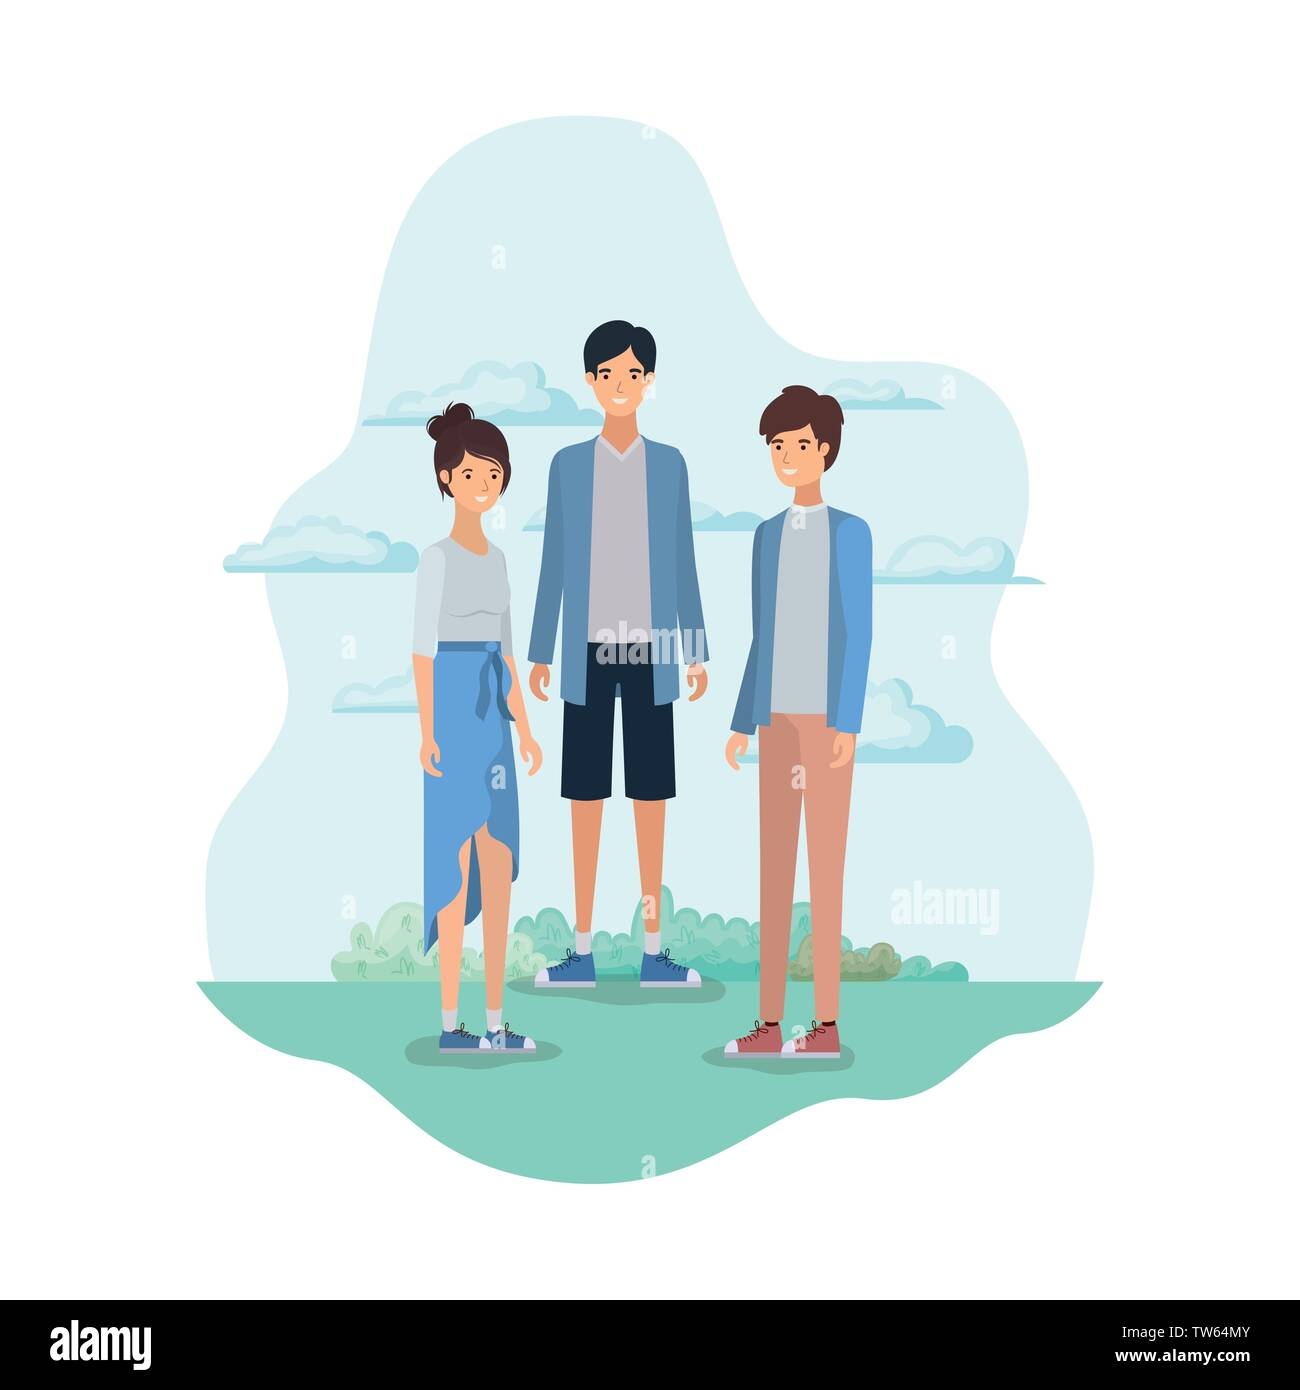 group of people in landscape with trees and plants vector illustration design - Stock Image